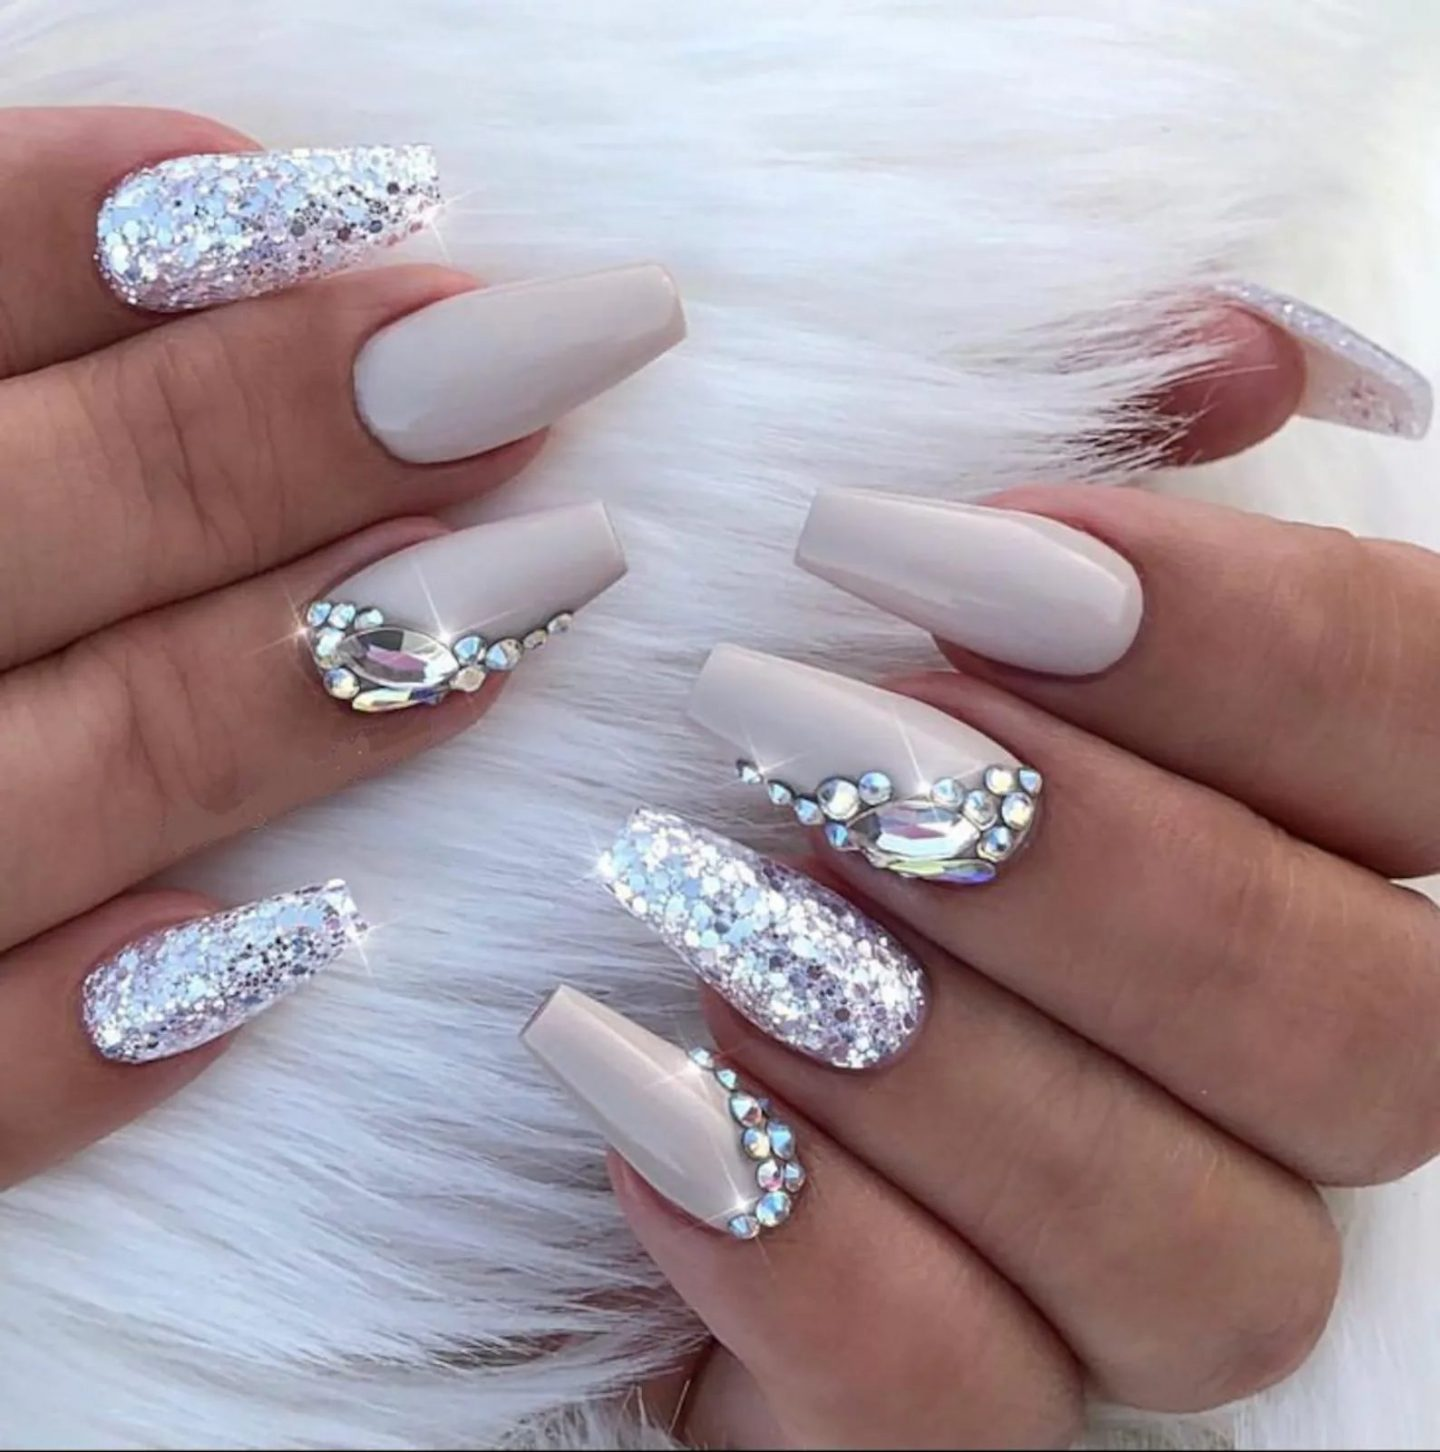 Nude nails with silver glitter and rhinestones